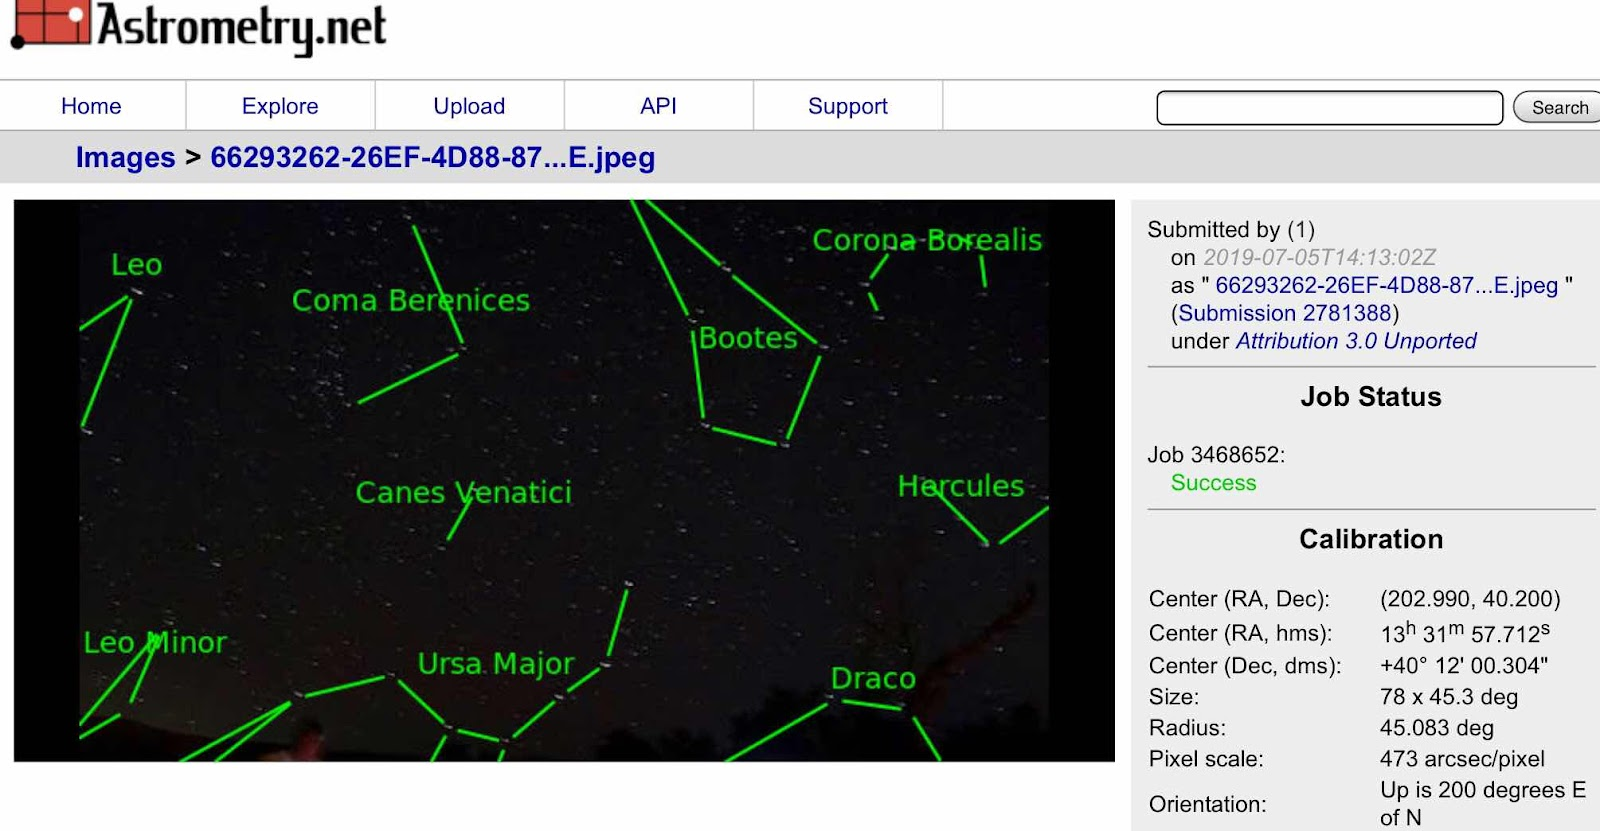 Using Astrometry.net to verify sky located pointed to by the camera (Source: Palmia Observatory)